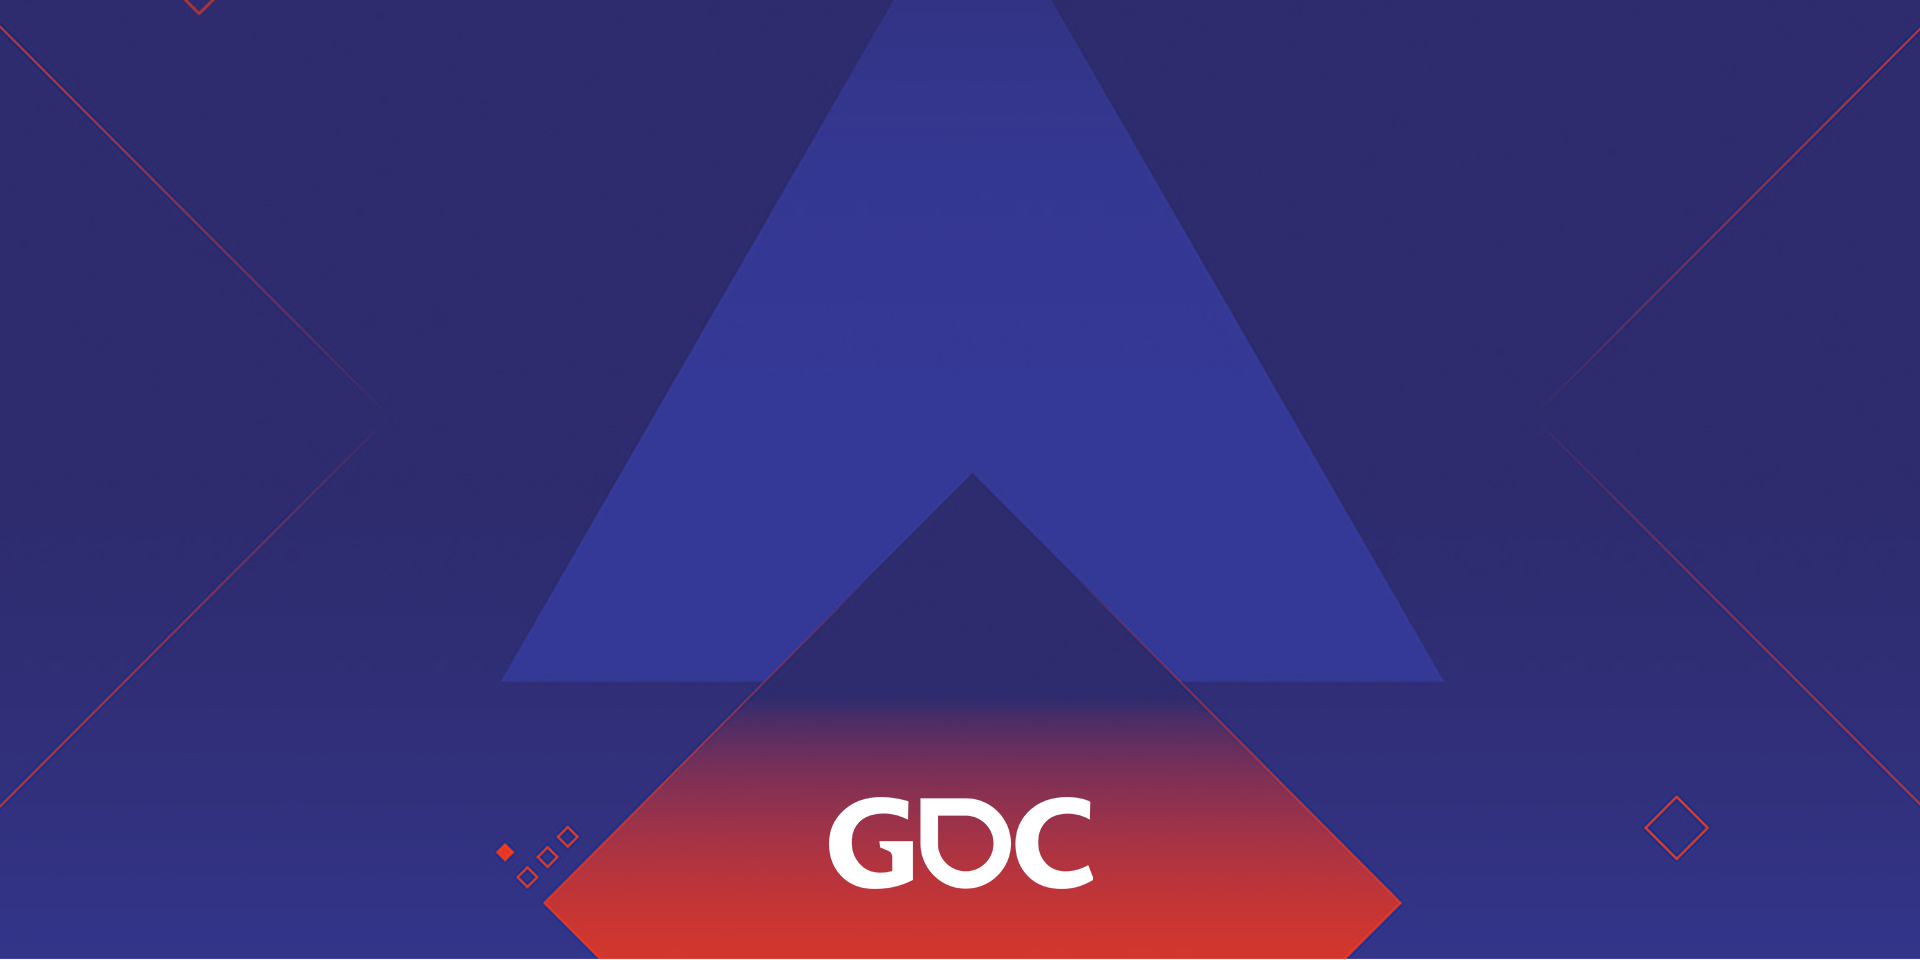 Ubisoft Montreal: well represented at GDC 2019